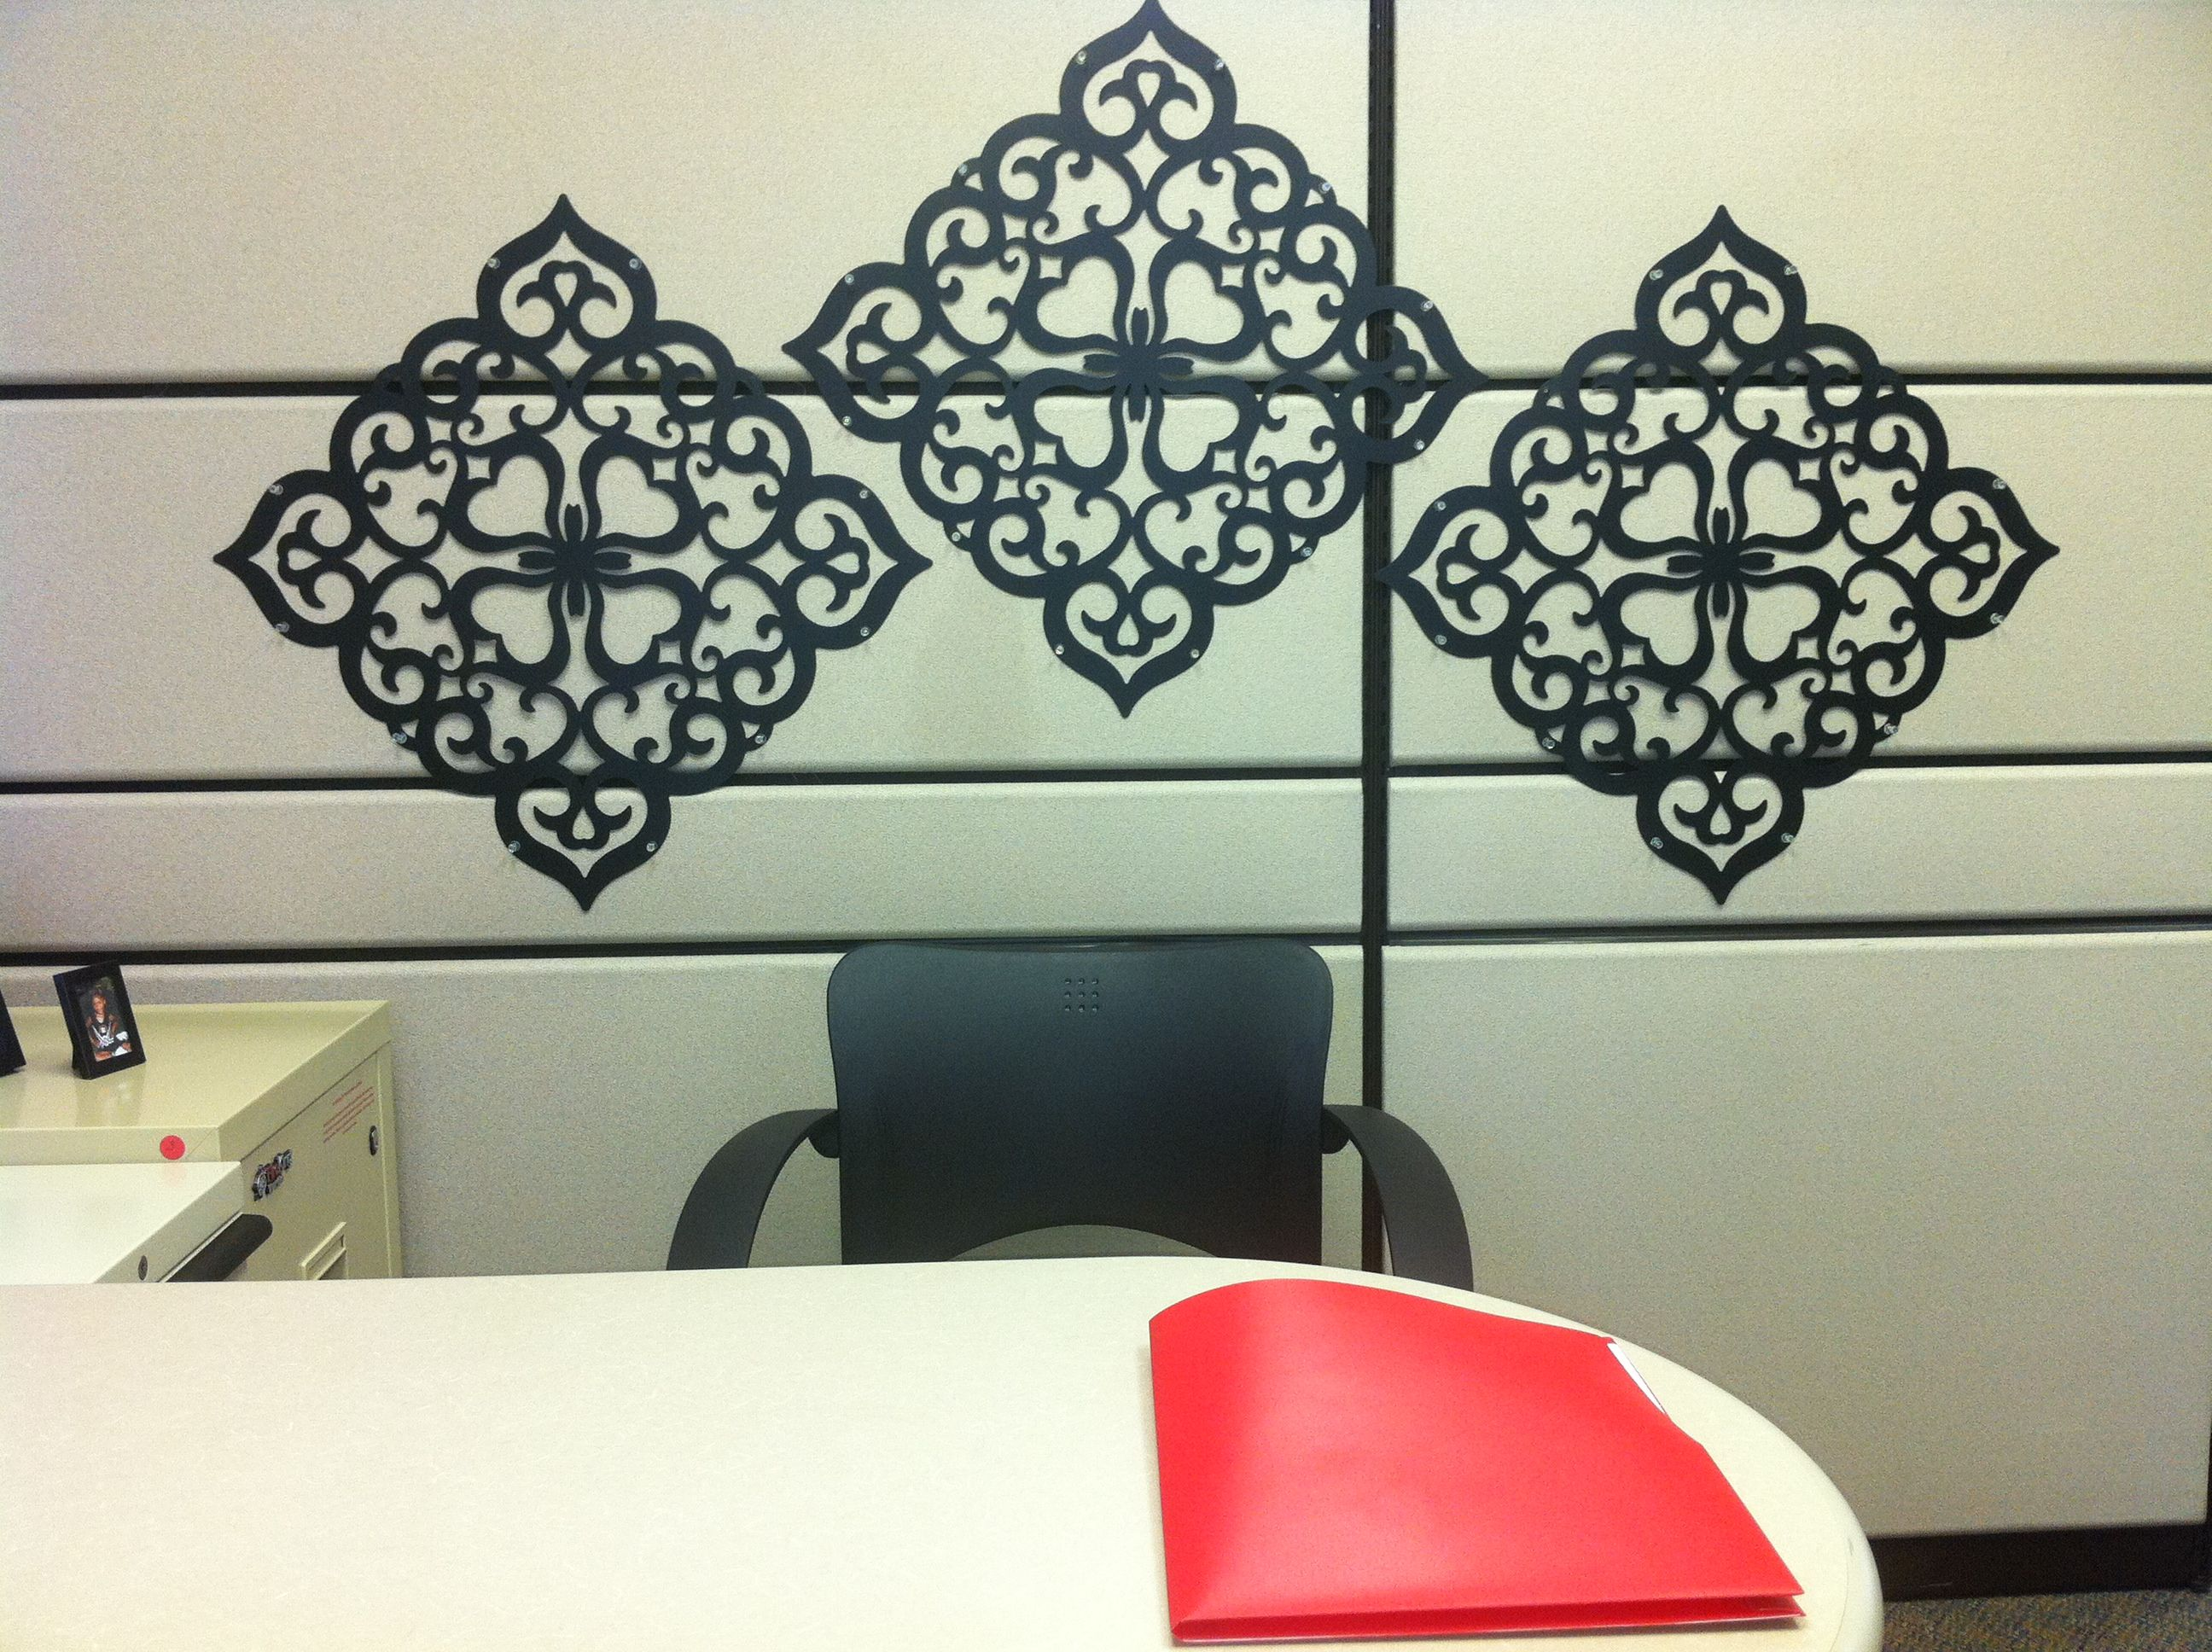 Cubicle Wall Decor   My Office   Pinterest   Cubicle walls ...